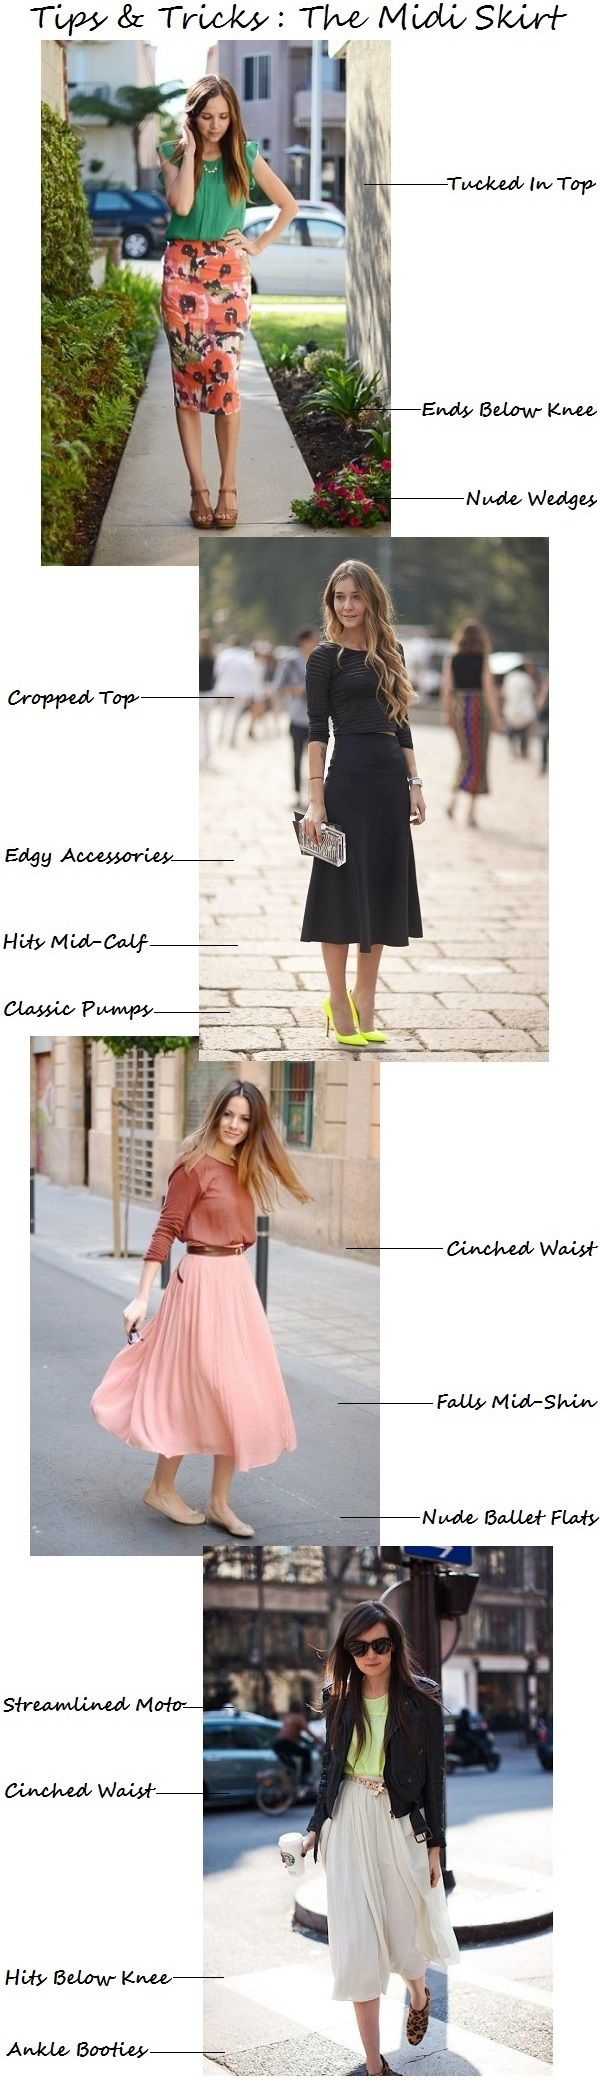 How To Wear A Midi Skirt // Tips & Tricks